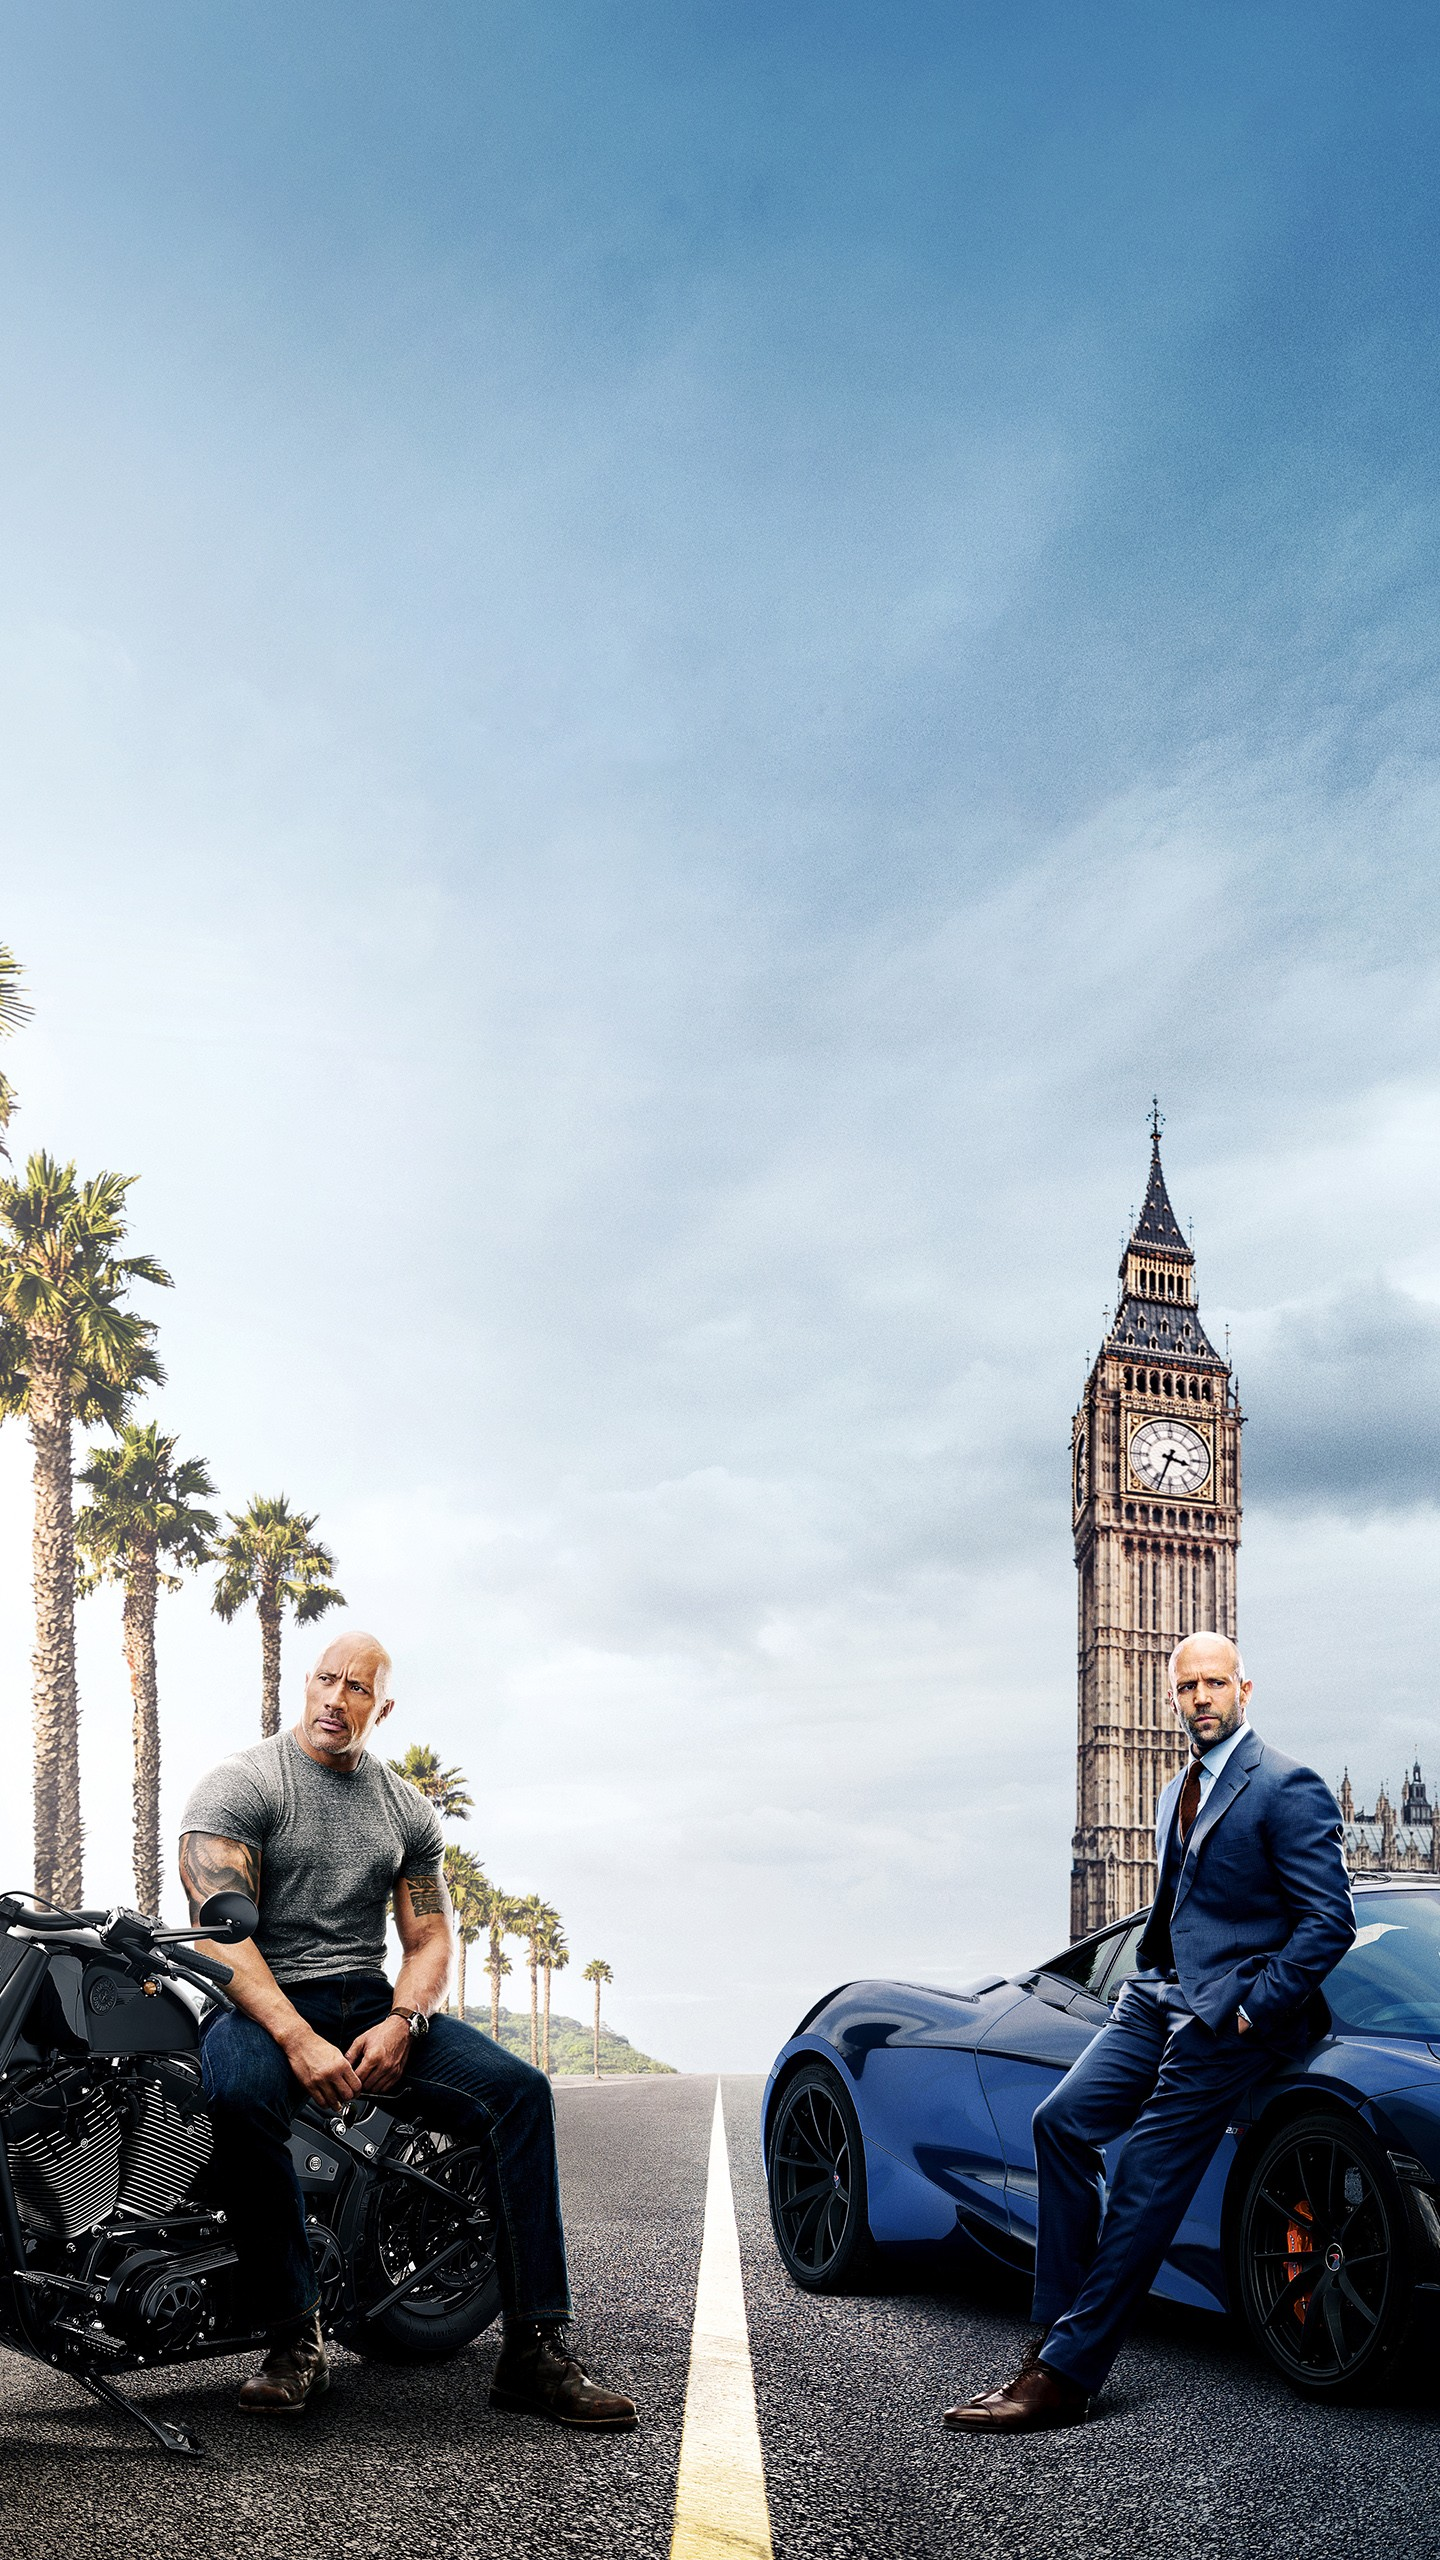 Wallpaper Fast And Furious Posted By Ryan Cunningham